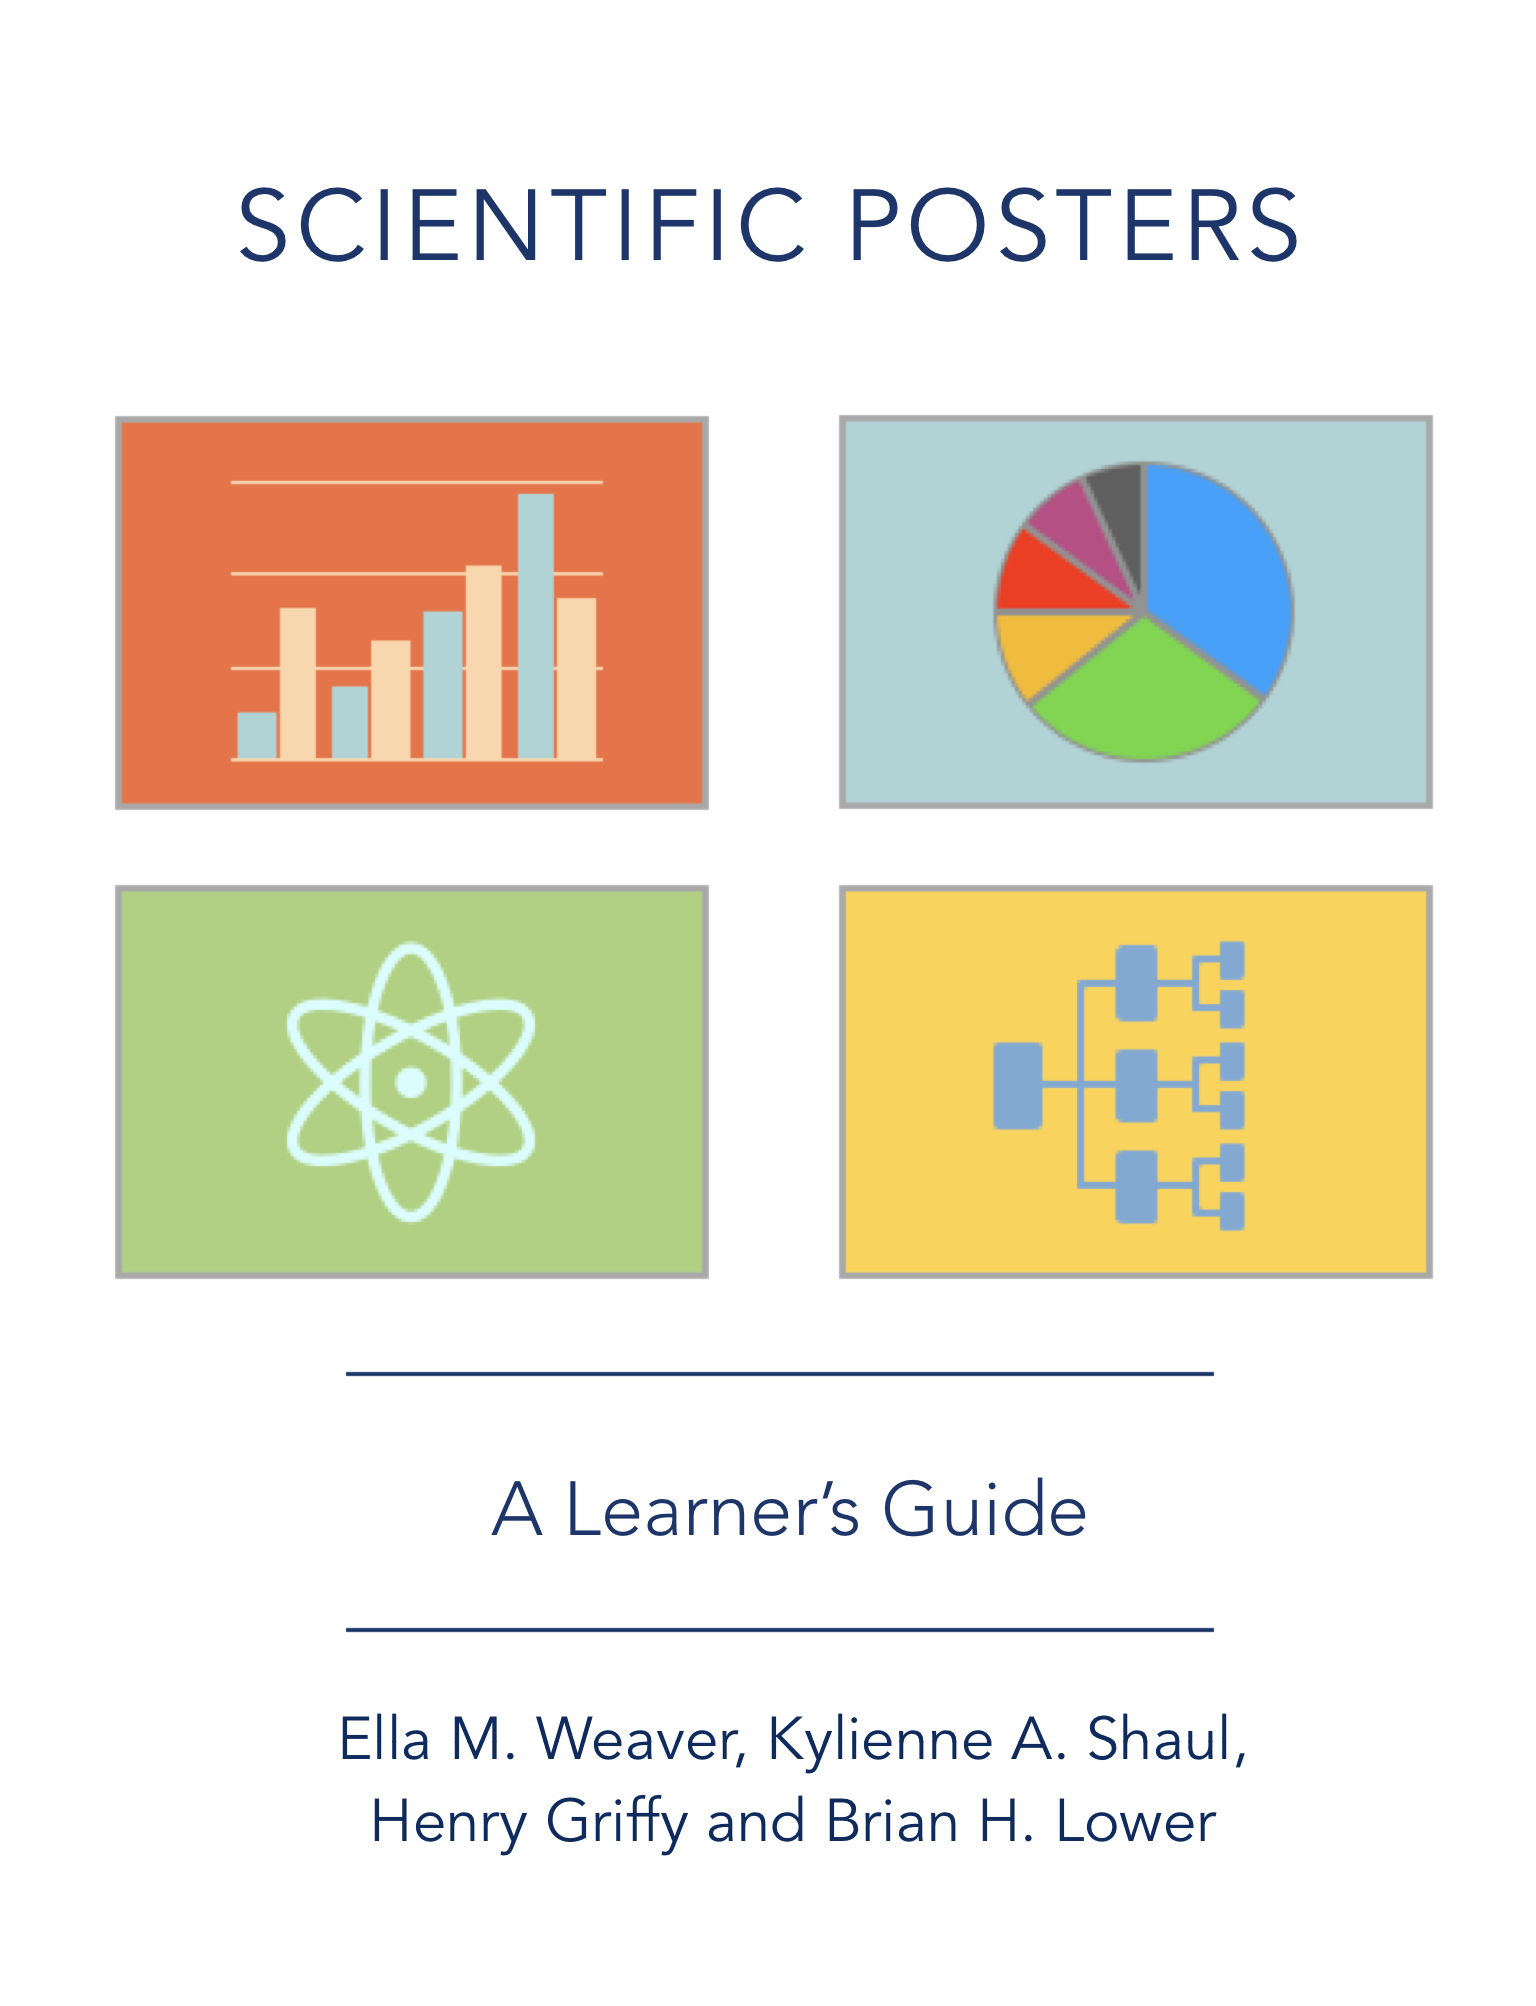 Cover image for Scientific Posters, A Learner's Guide